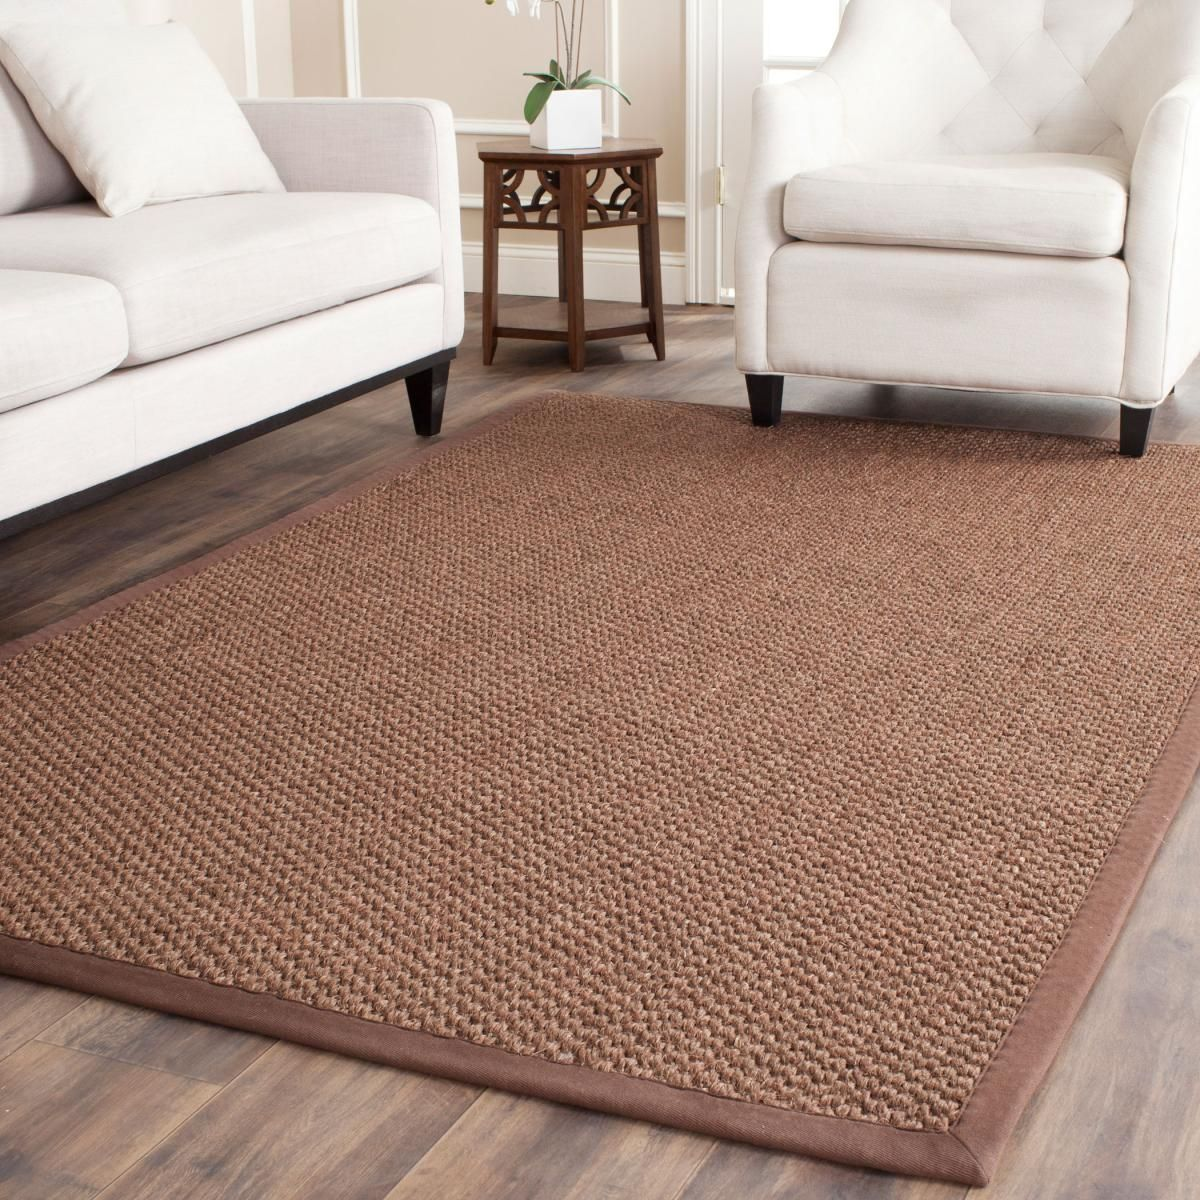 Rug Nf525d Natural Fiber Area Rugs By Safavieh Sisal Area Rugs Braided Area Rugs Natural Fiber Rugs Natural fiber rugs that are soft